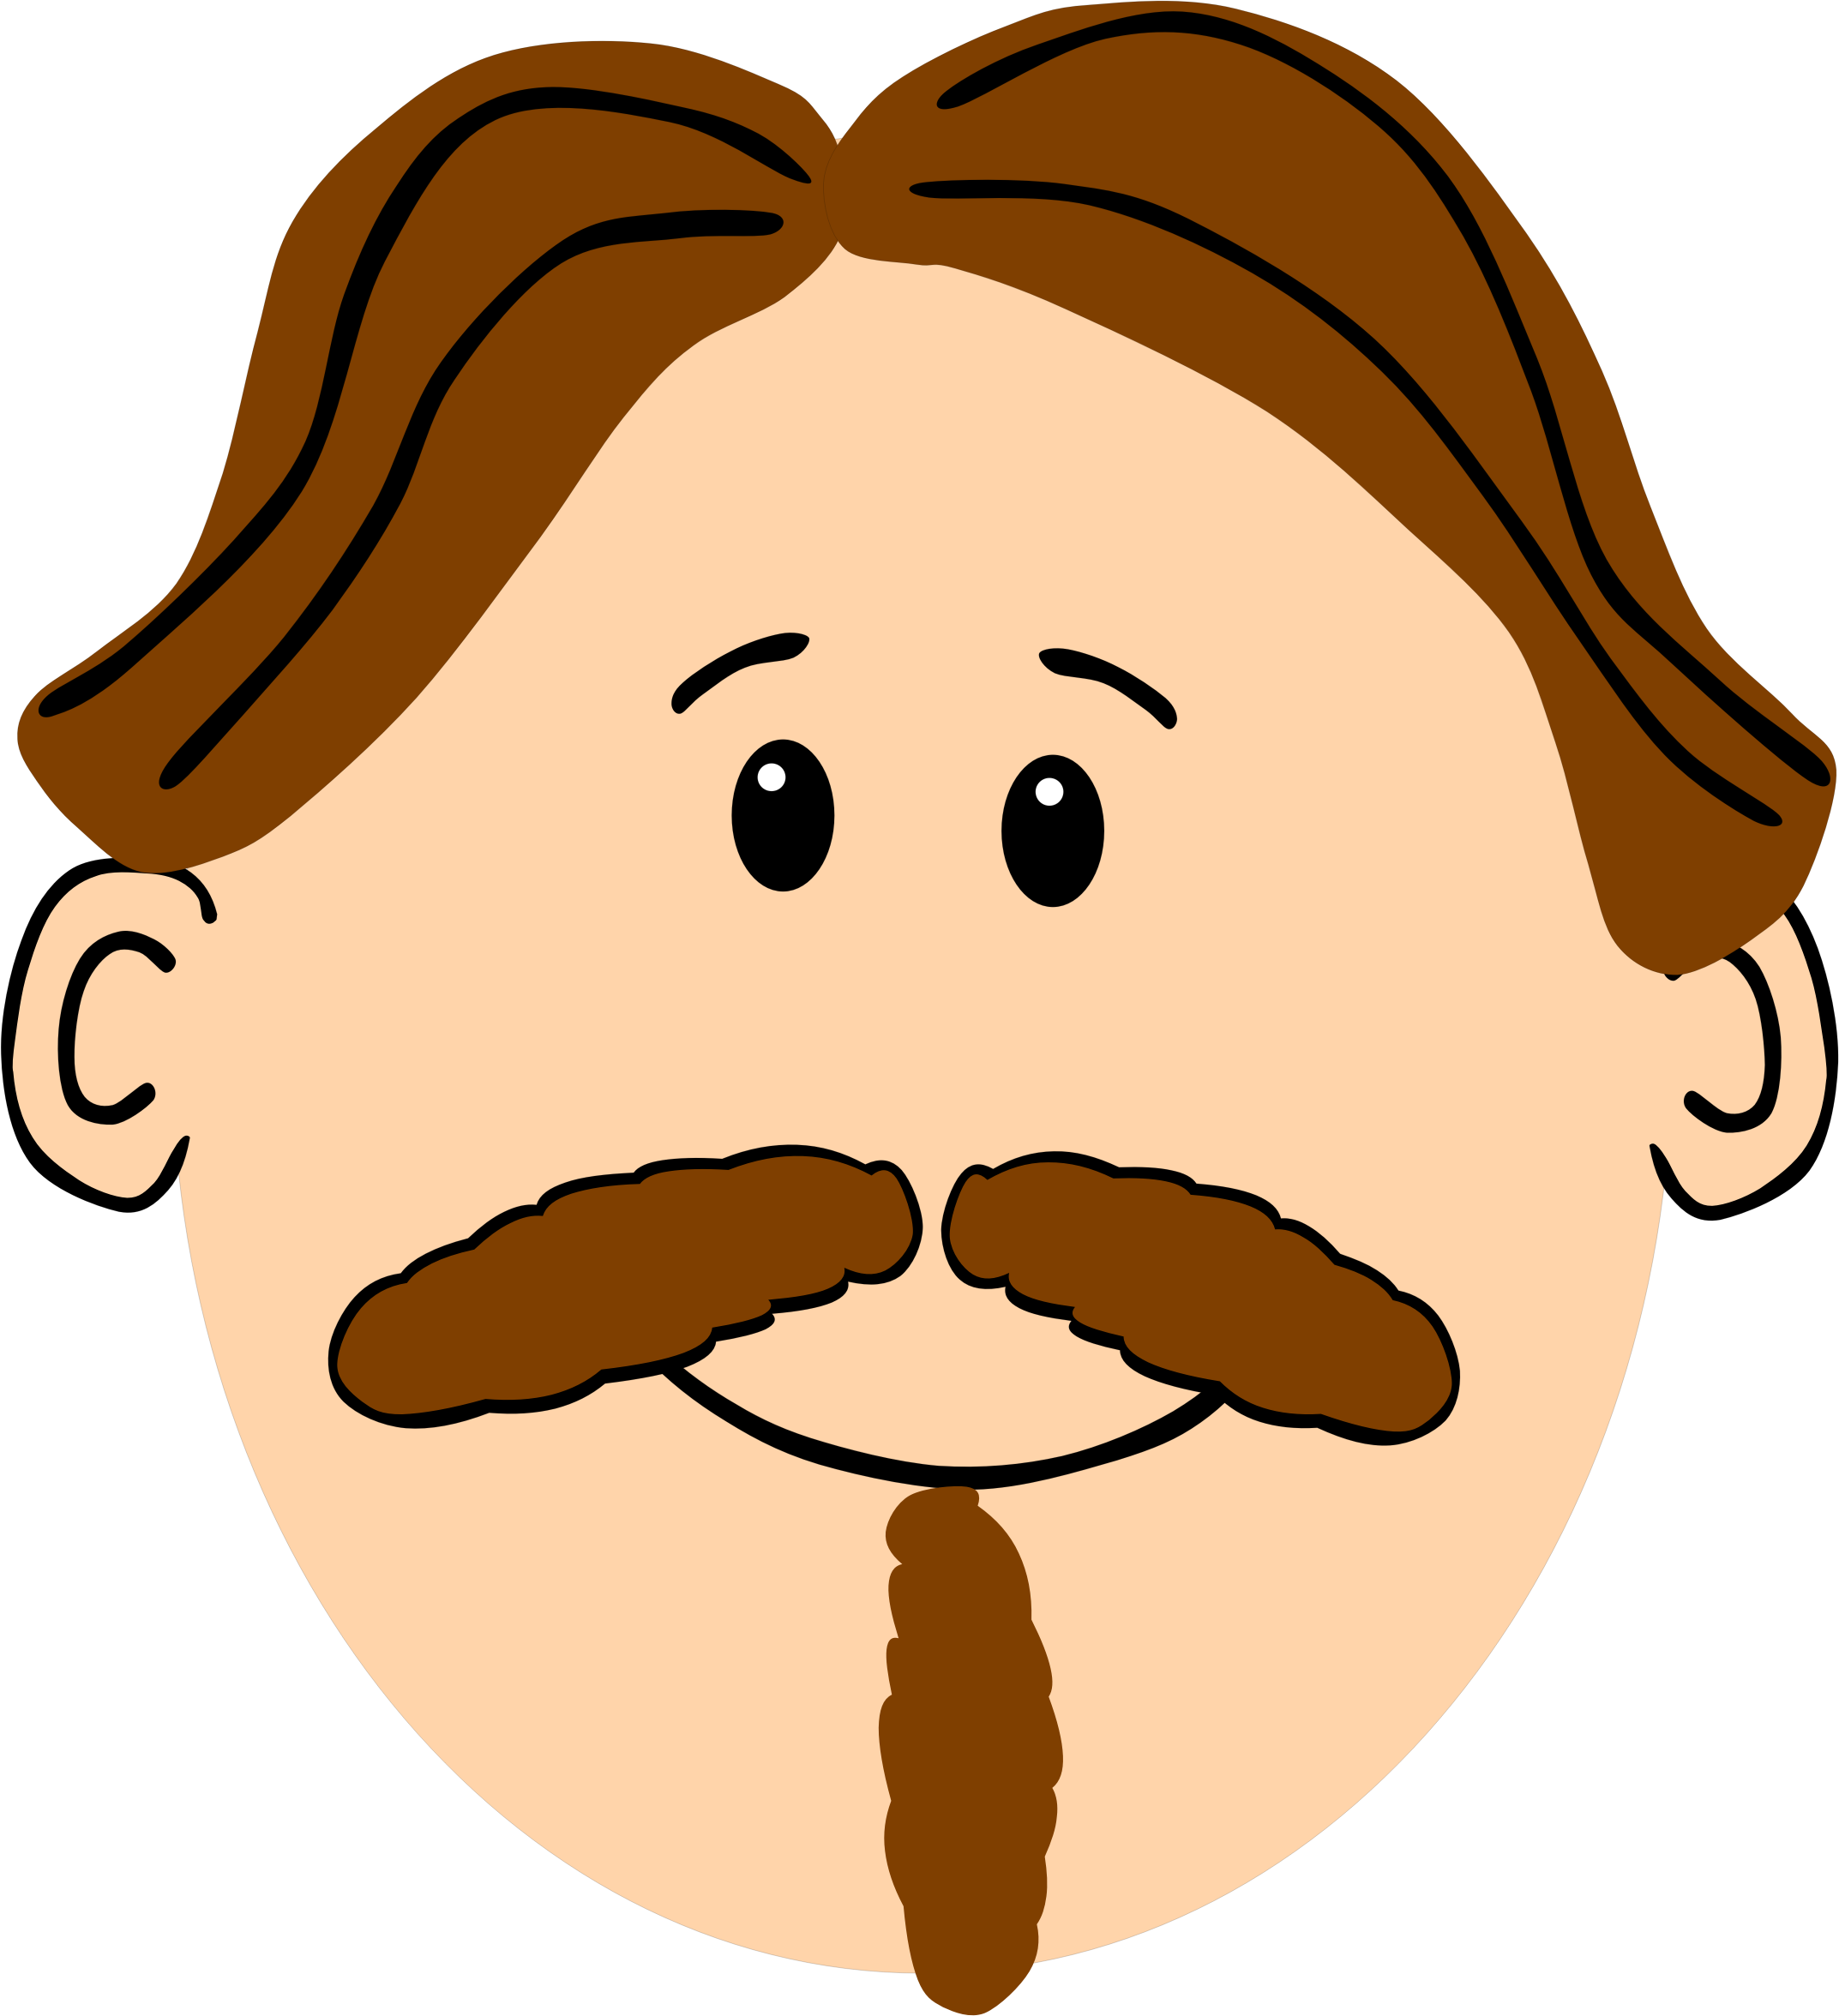 Man with brown hair mustache and goatee by cirenovy